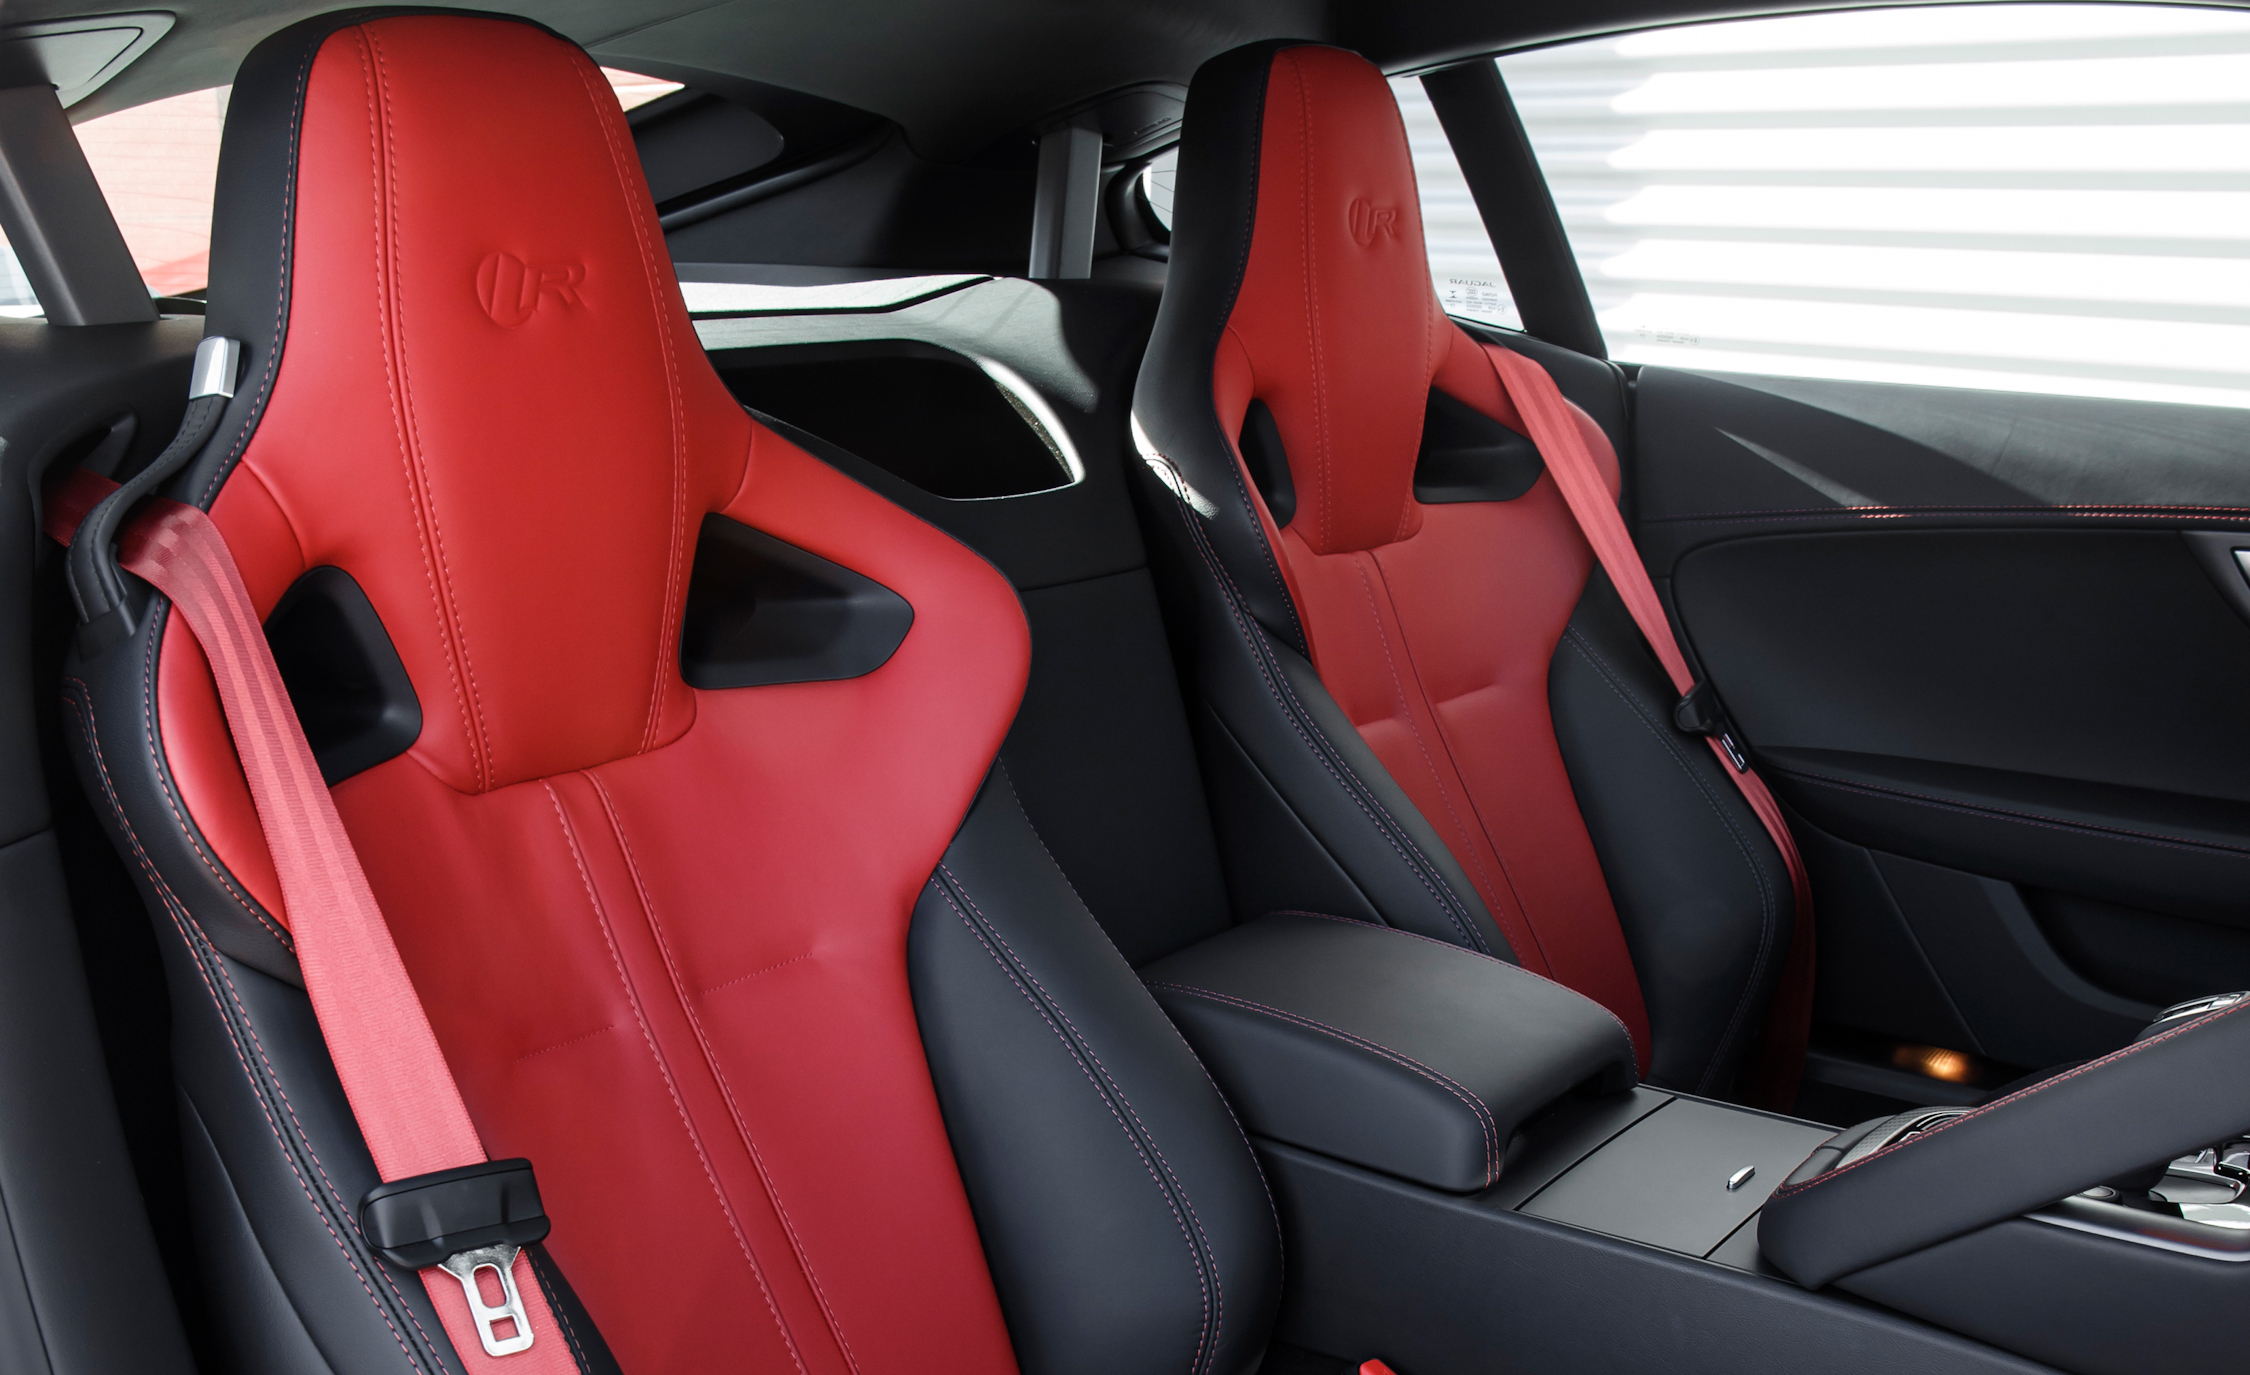 2016 Jaguar F Type S Coupe Interior Speedometer 8143 Cars Performance Reviews And Test Drive